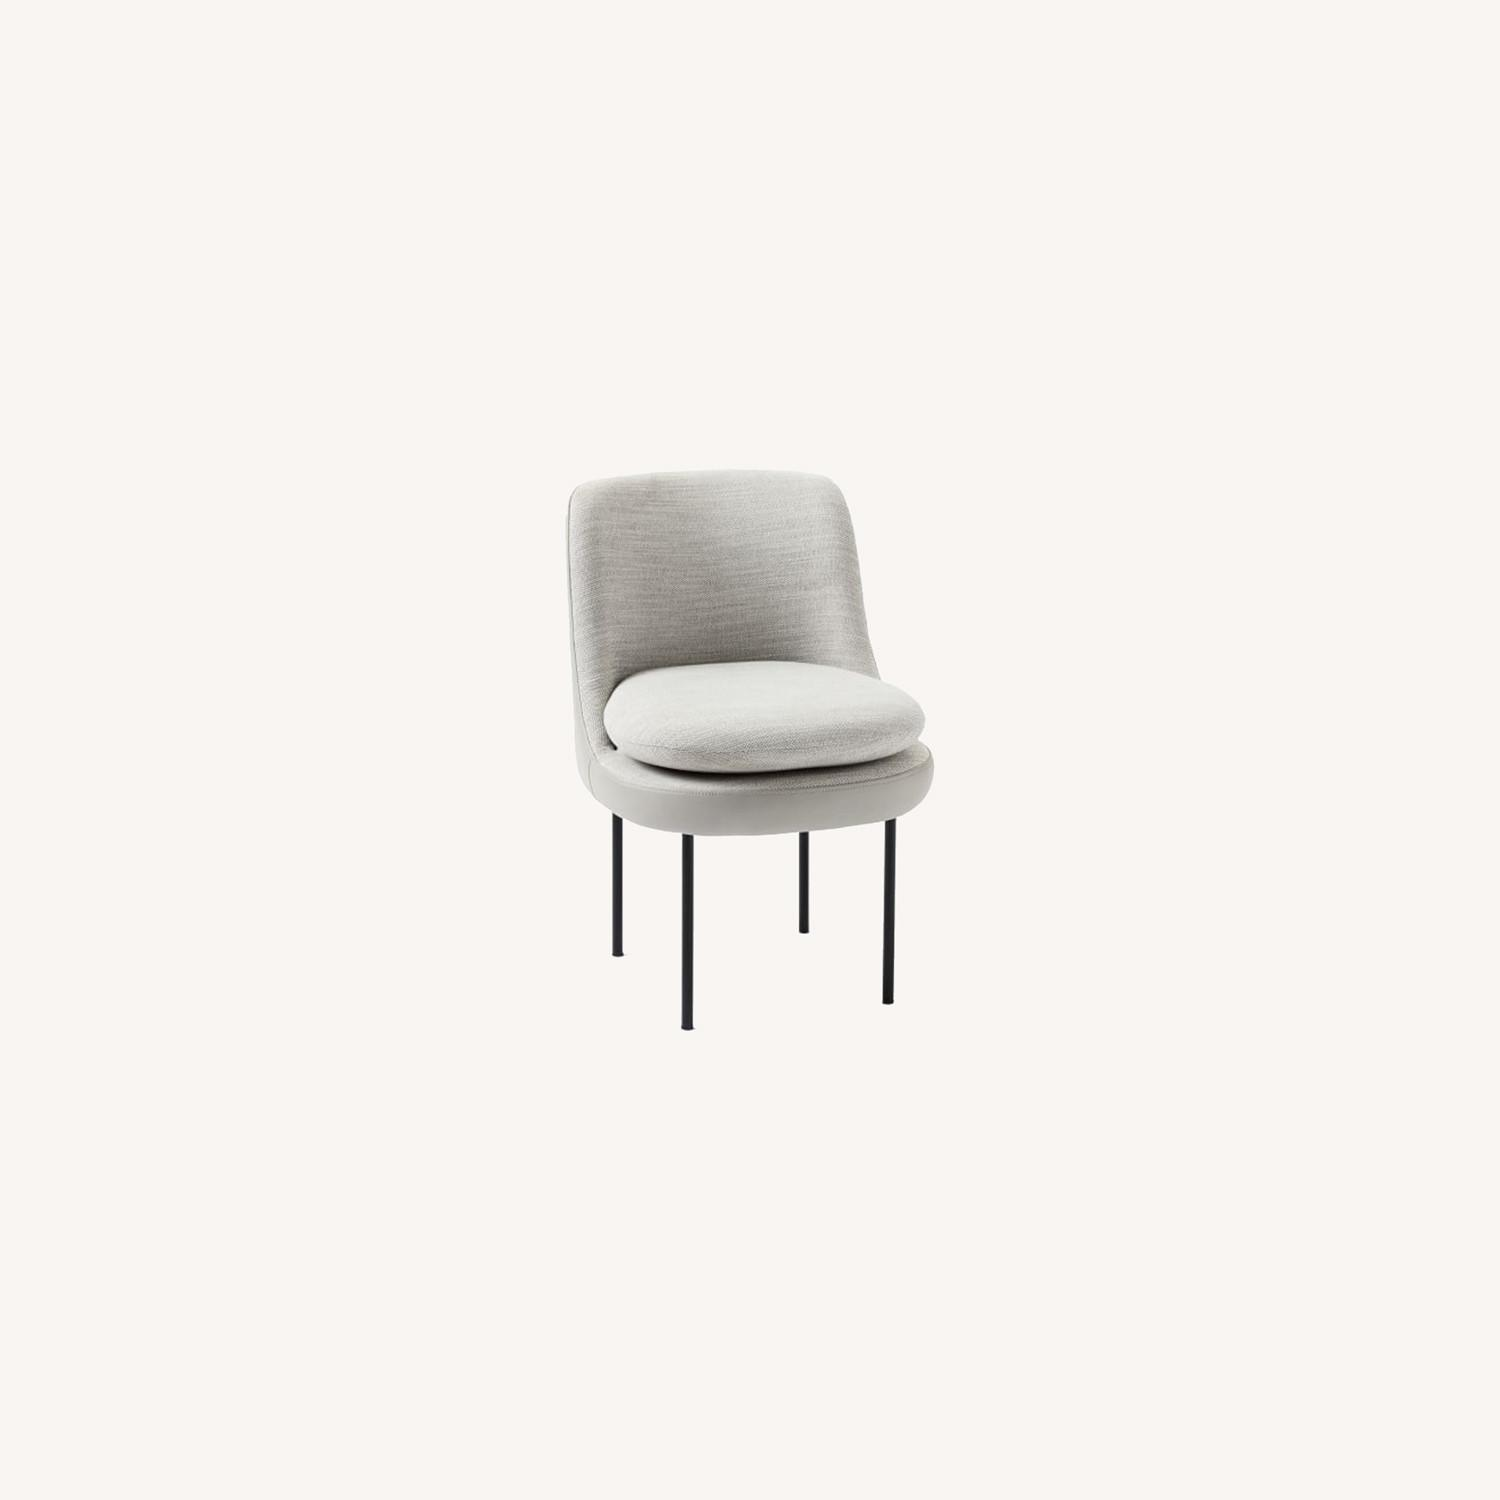 West Elm Modern Curved Leather Back Dining Chair - image-0